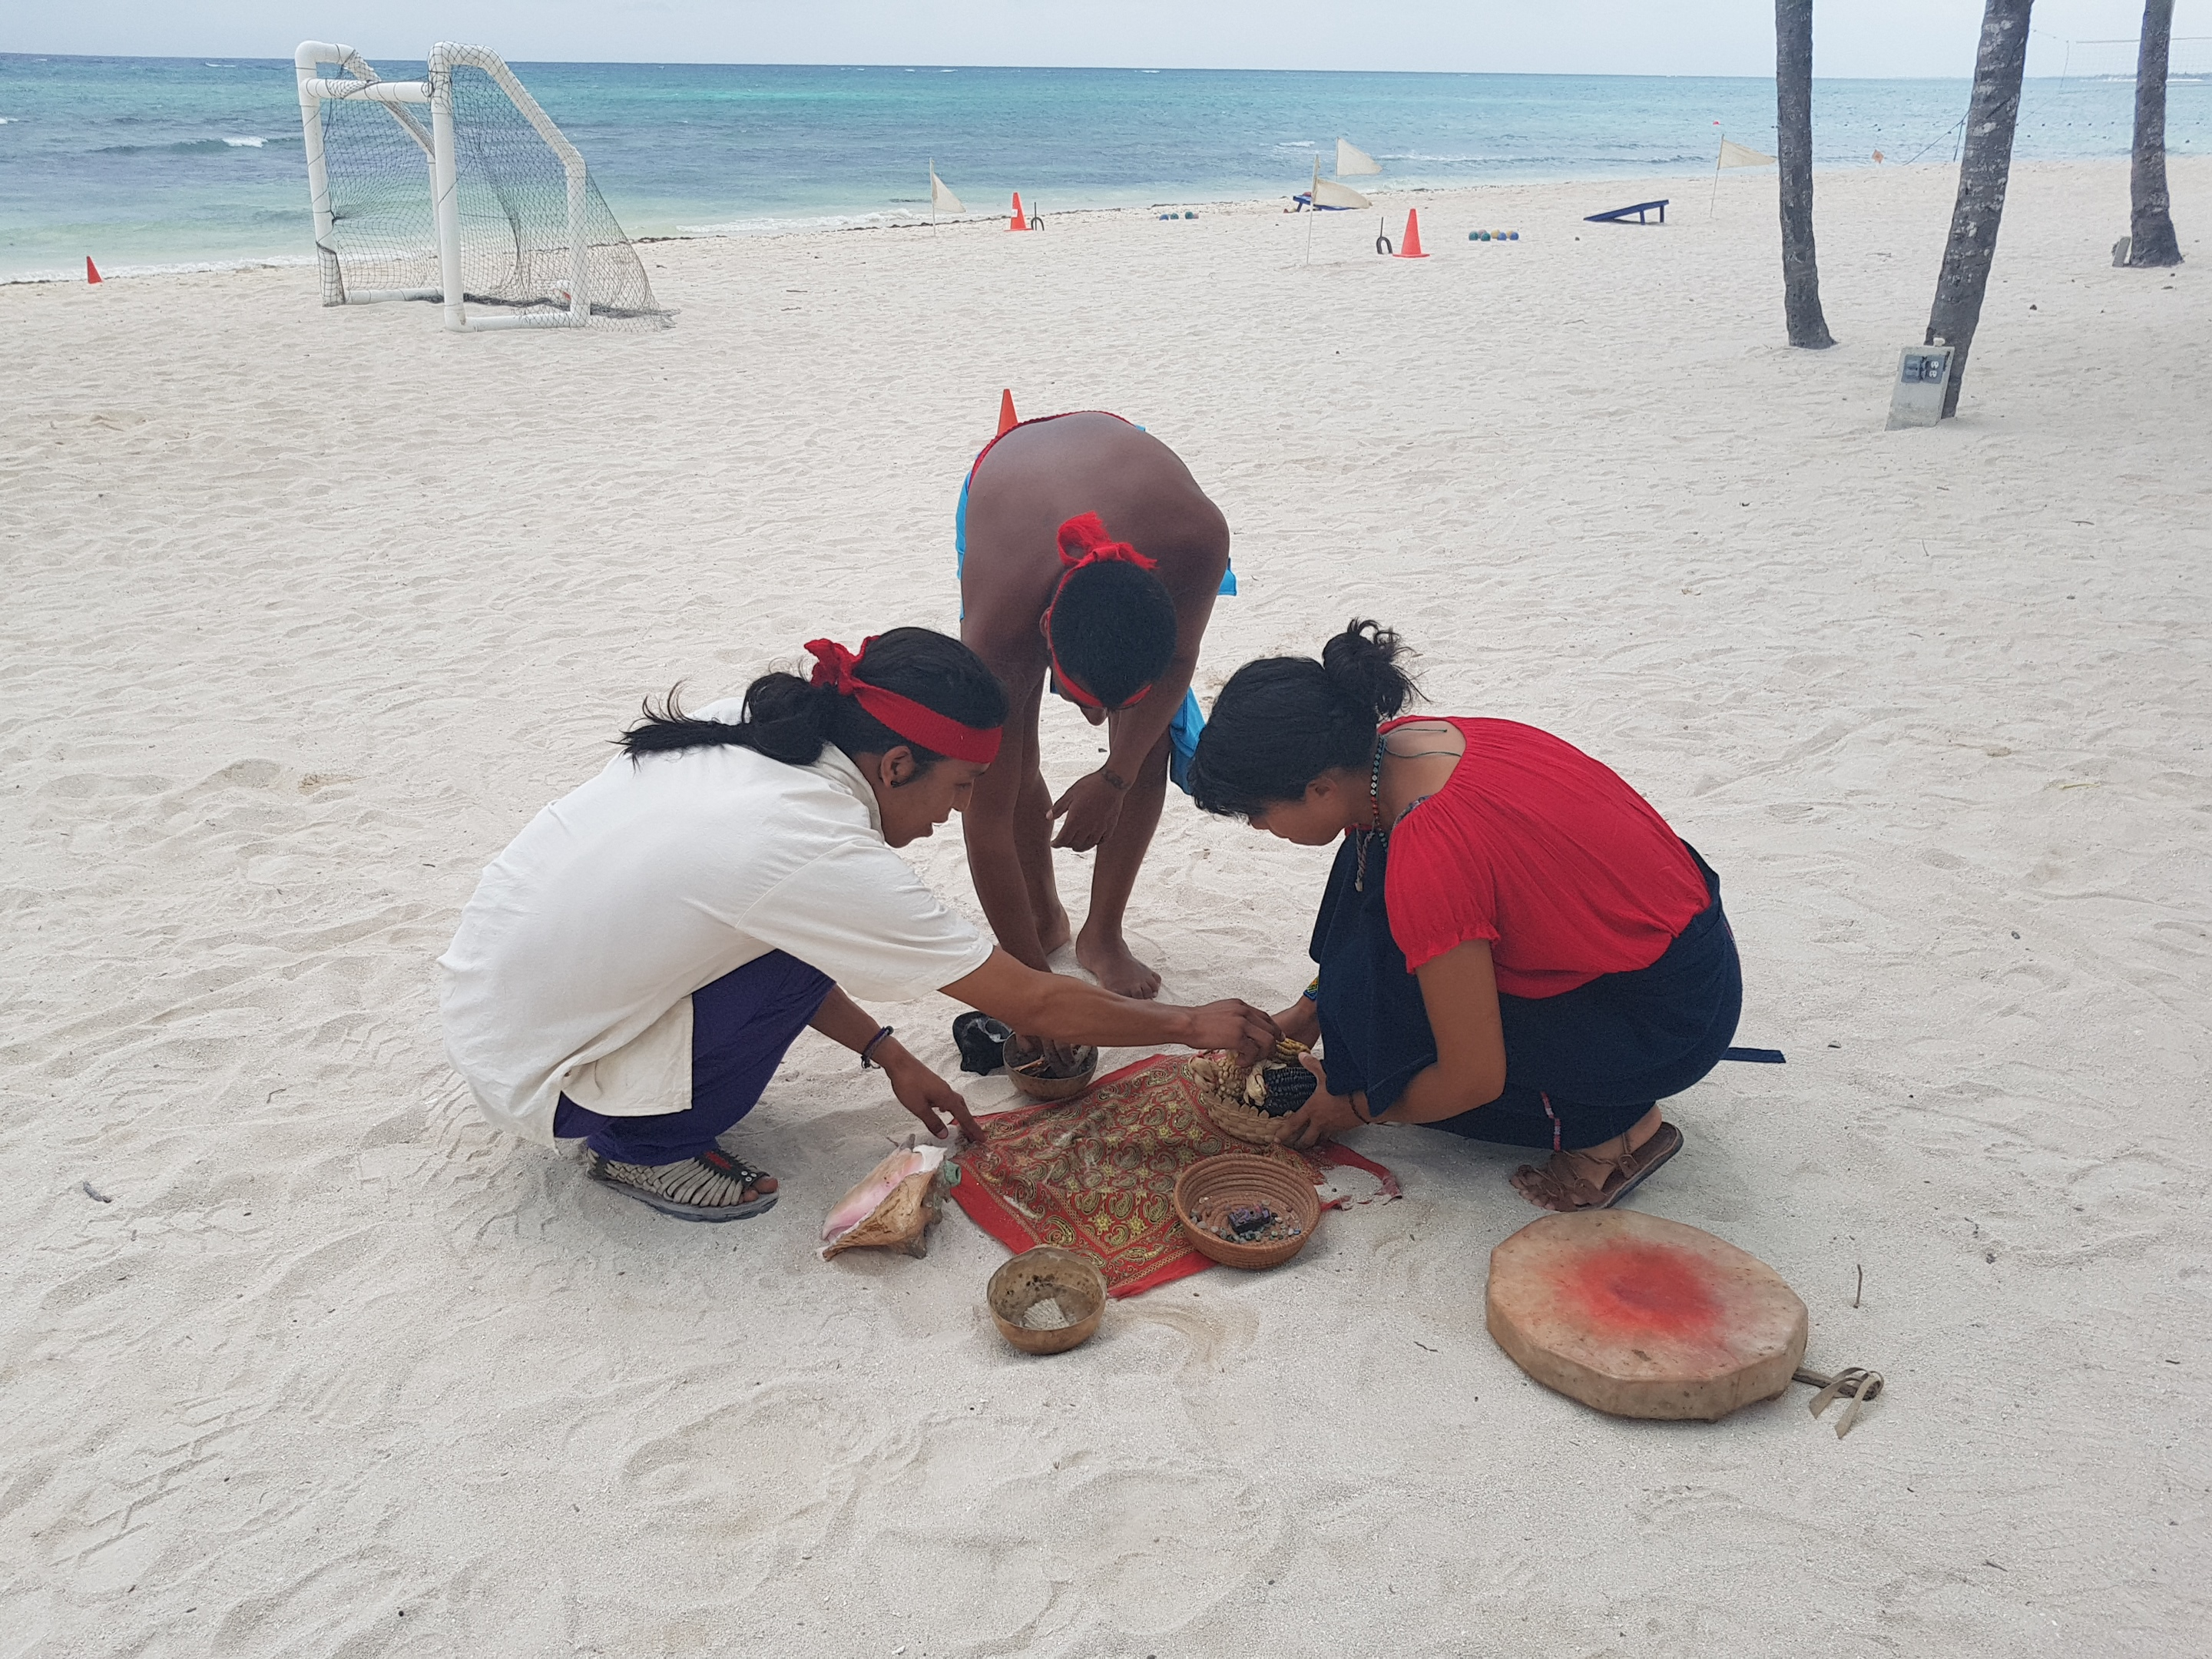 Three shamans at the beach getting tools ready on the sand, a drum , corn shells etc.